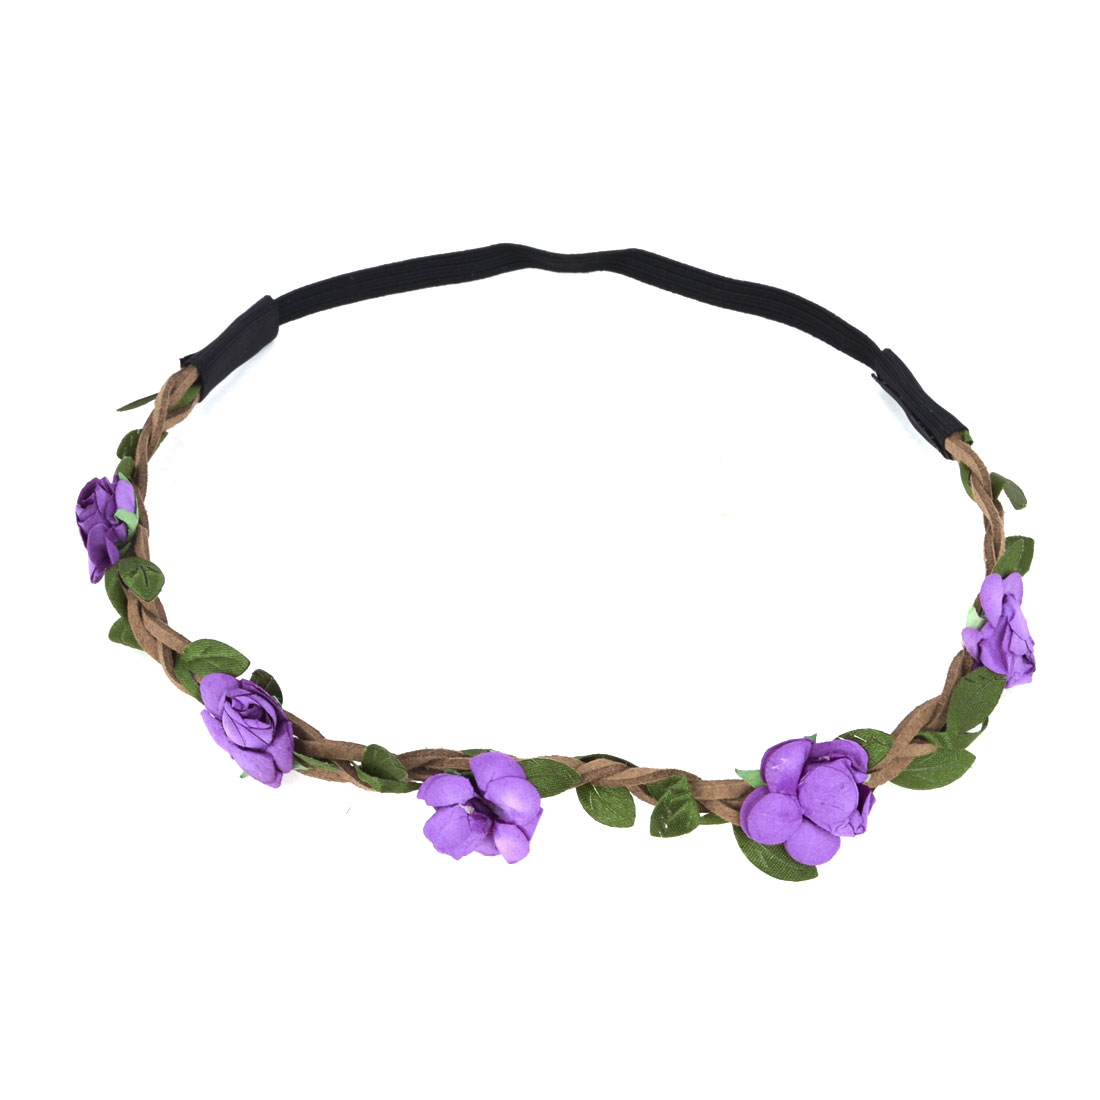 Ladies Hairdressing Purple Flowers Accent Elastic Braided Hair Band Headband